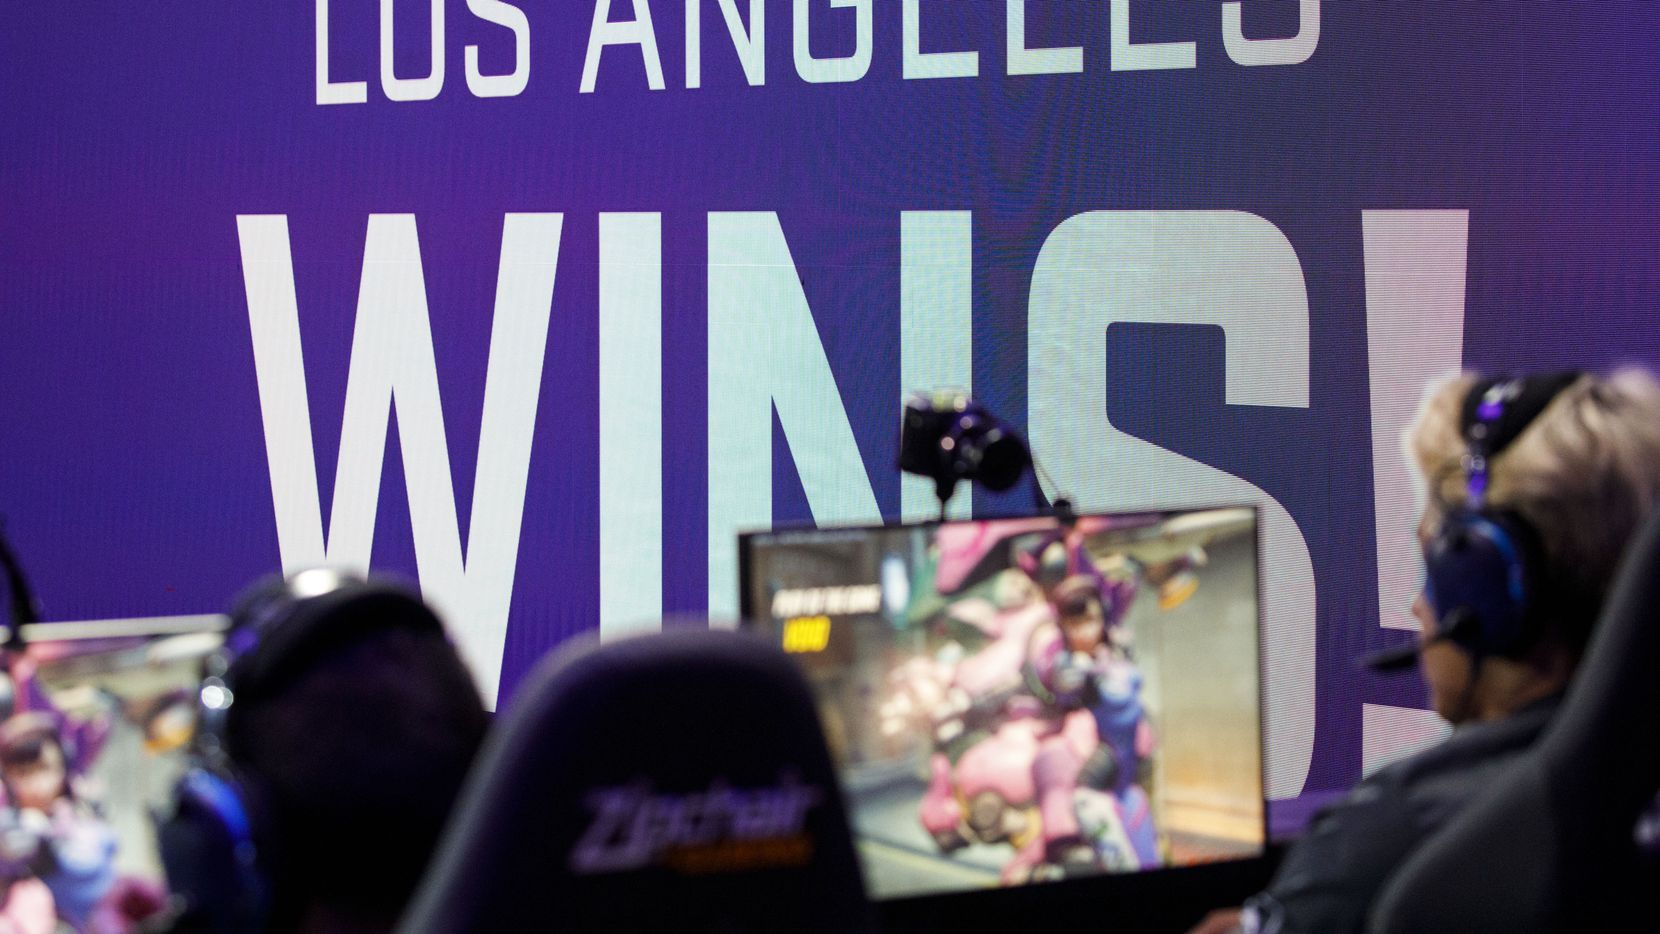 The Dallas Fuel loses the third round during the Overwatch League match between the Dallas Fuel and LA Gladiators on Friday, August 9, 2019 at Blizzard Arena in Burbank, CA. (Photo by Patrick T. Fallon/Special Contributor to The Dallas Morning News)